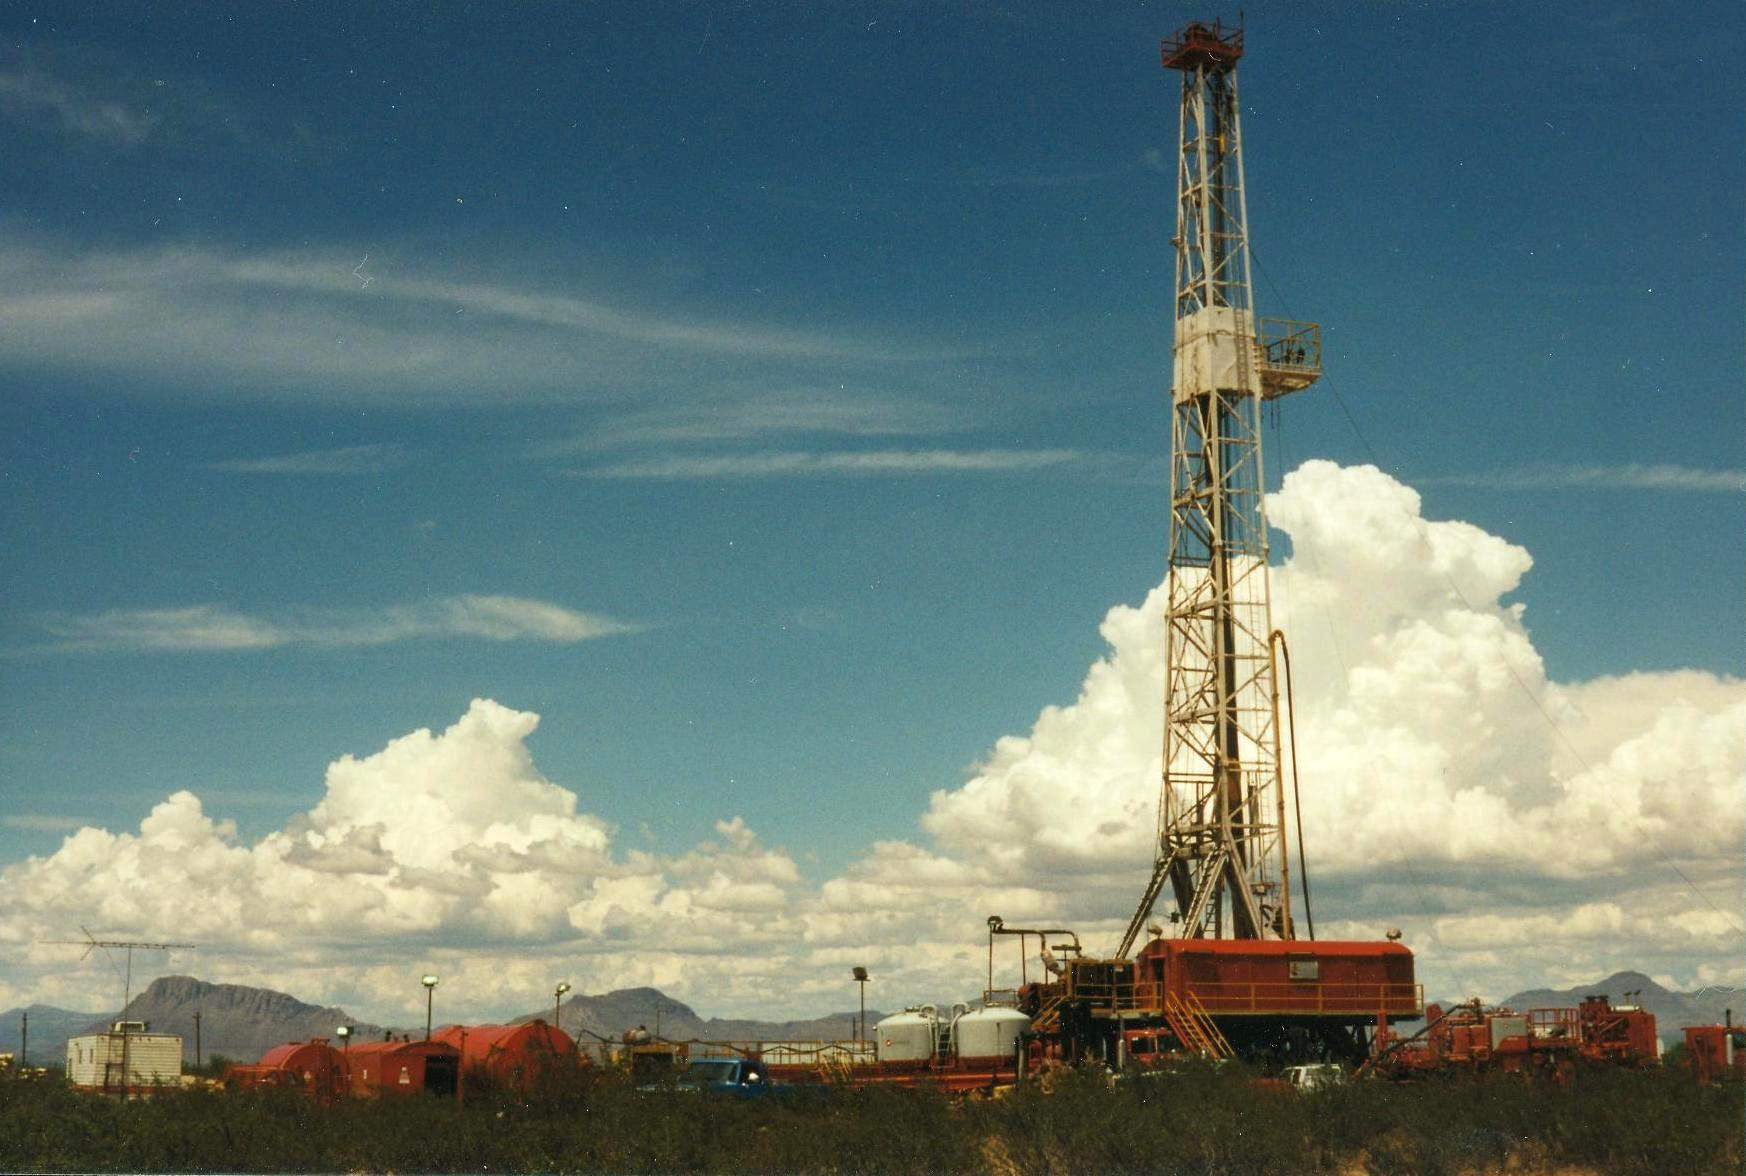 Drilling wildcat in Pedregosa Basin SE Arizona 1995